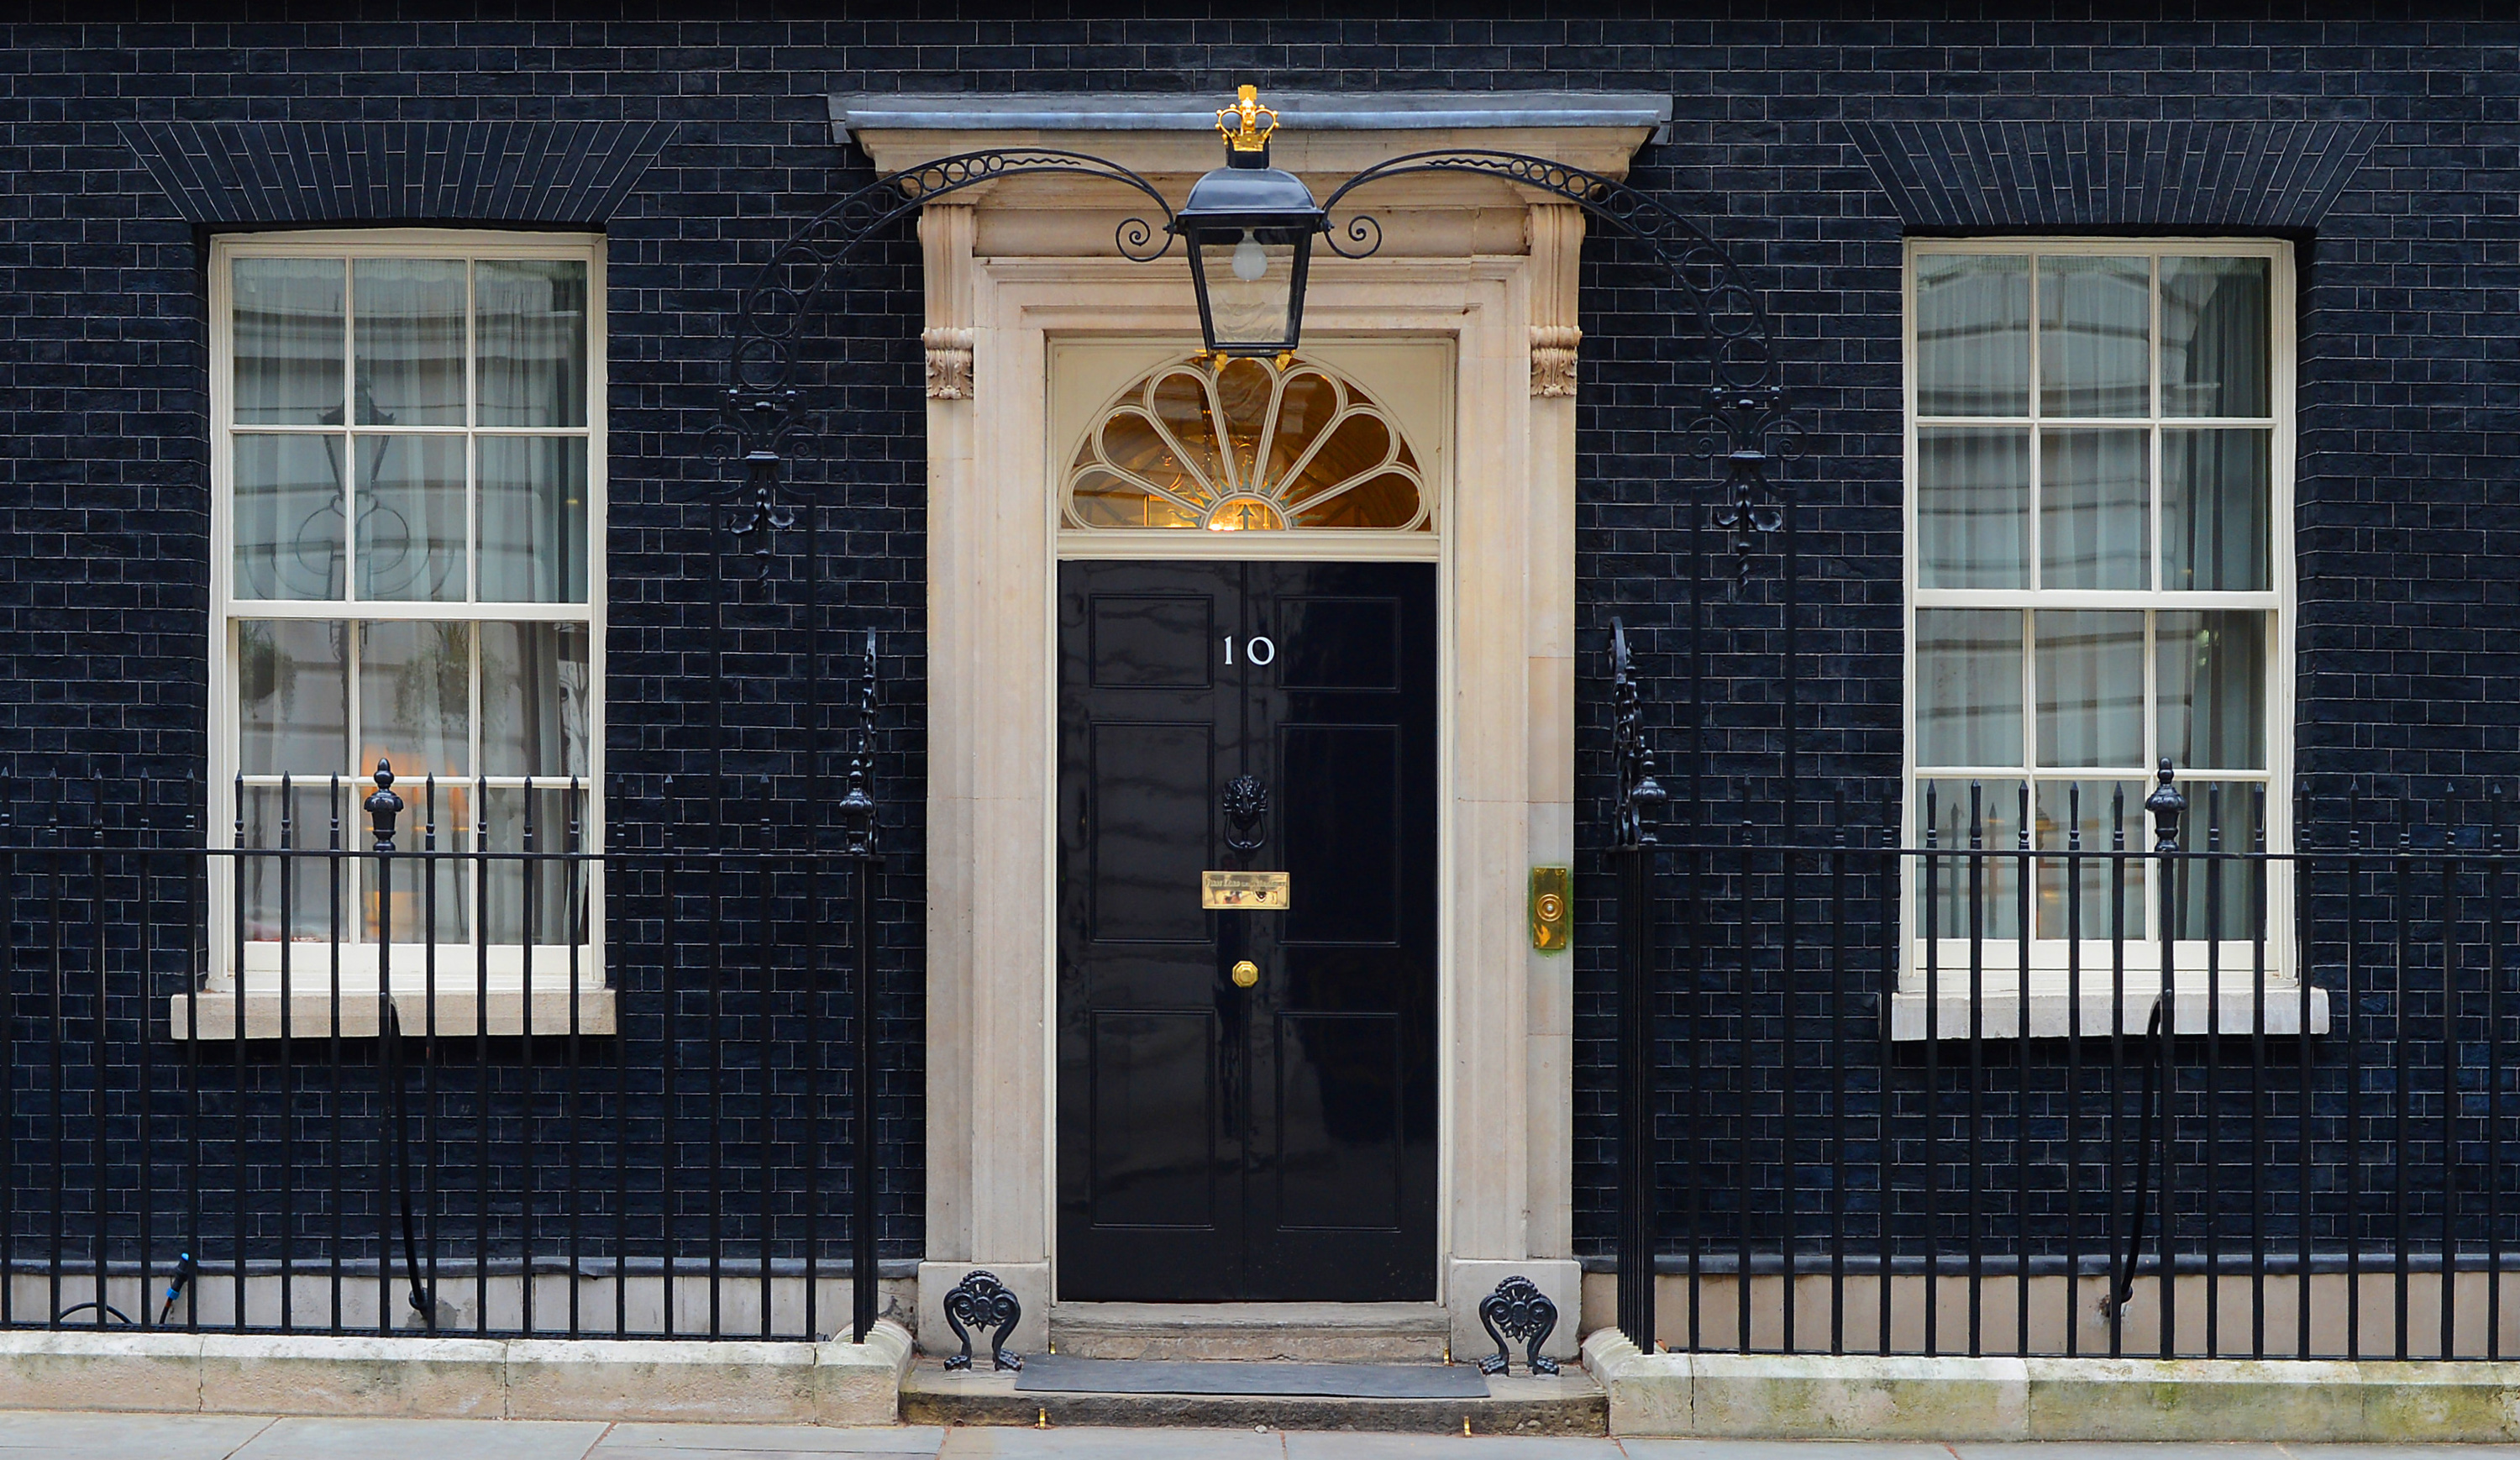 Ie closet doors and sometimes on an exterior door in conjunction with - This Door Has Become The Symbol Of London And Is Seen Most Nights On The News Number 10 Downing Street Is One Of The Most Popular Tourist Destinations In